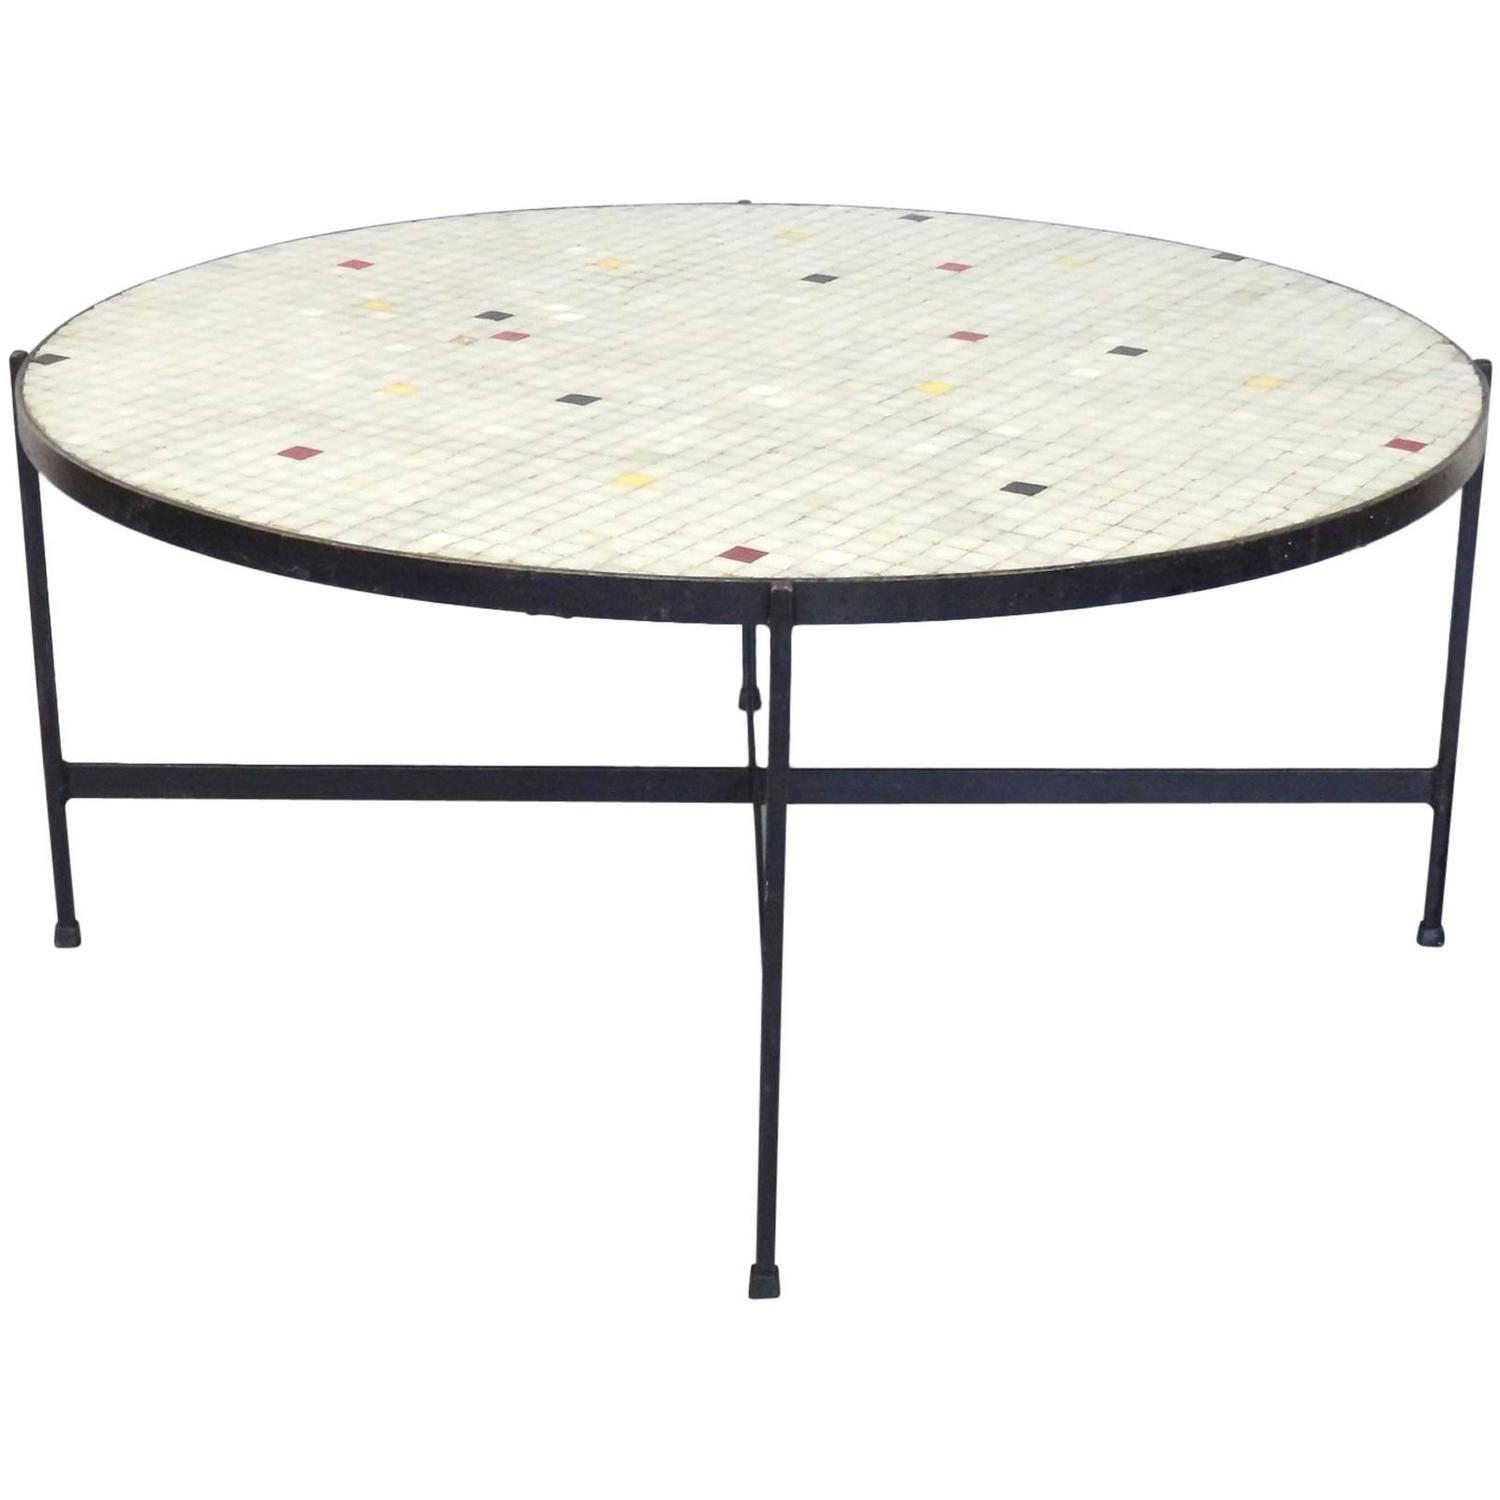 large freeform coffee table with inset quartz top for sale at 1stdibs